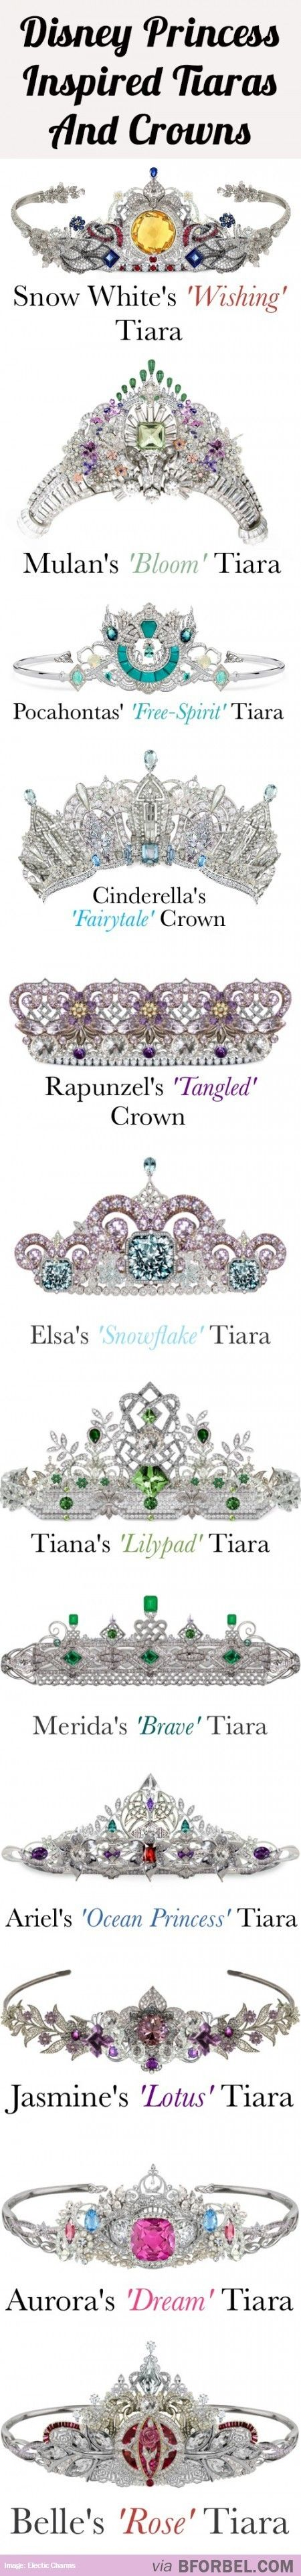 12 Disney Princess Tiaras And Crowns… Like this.